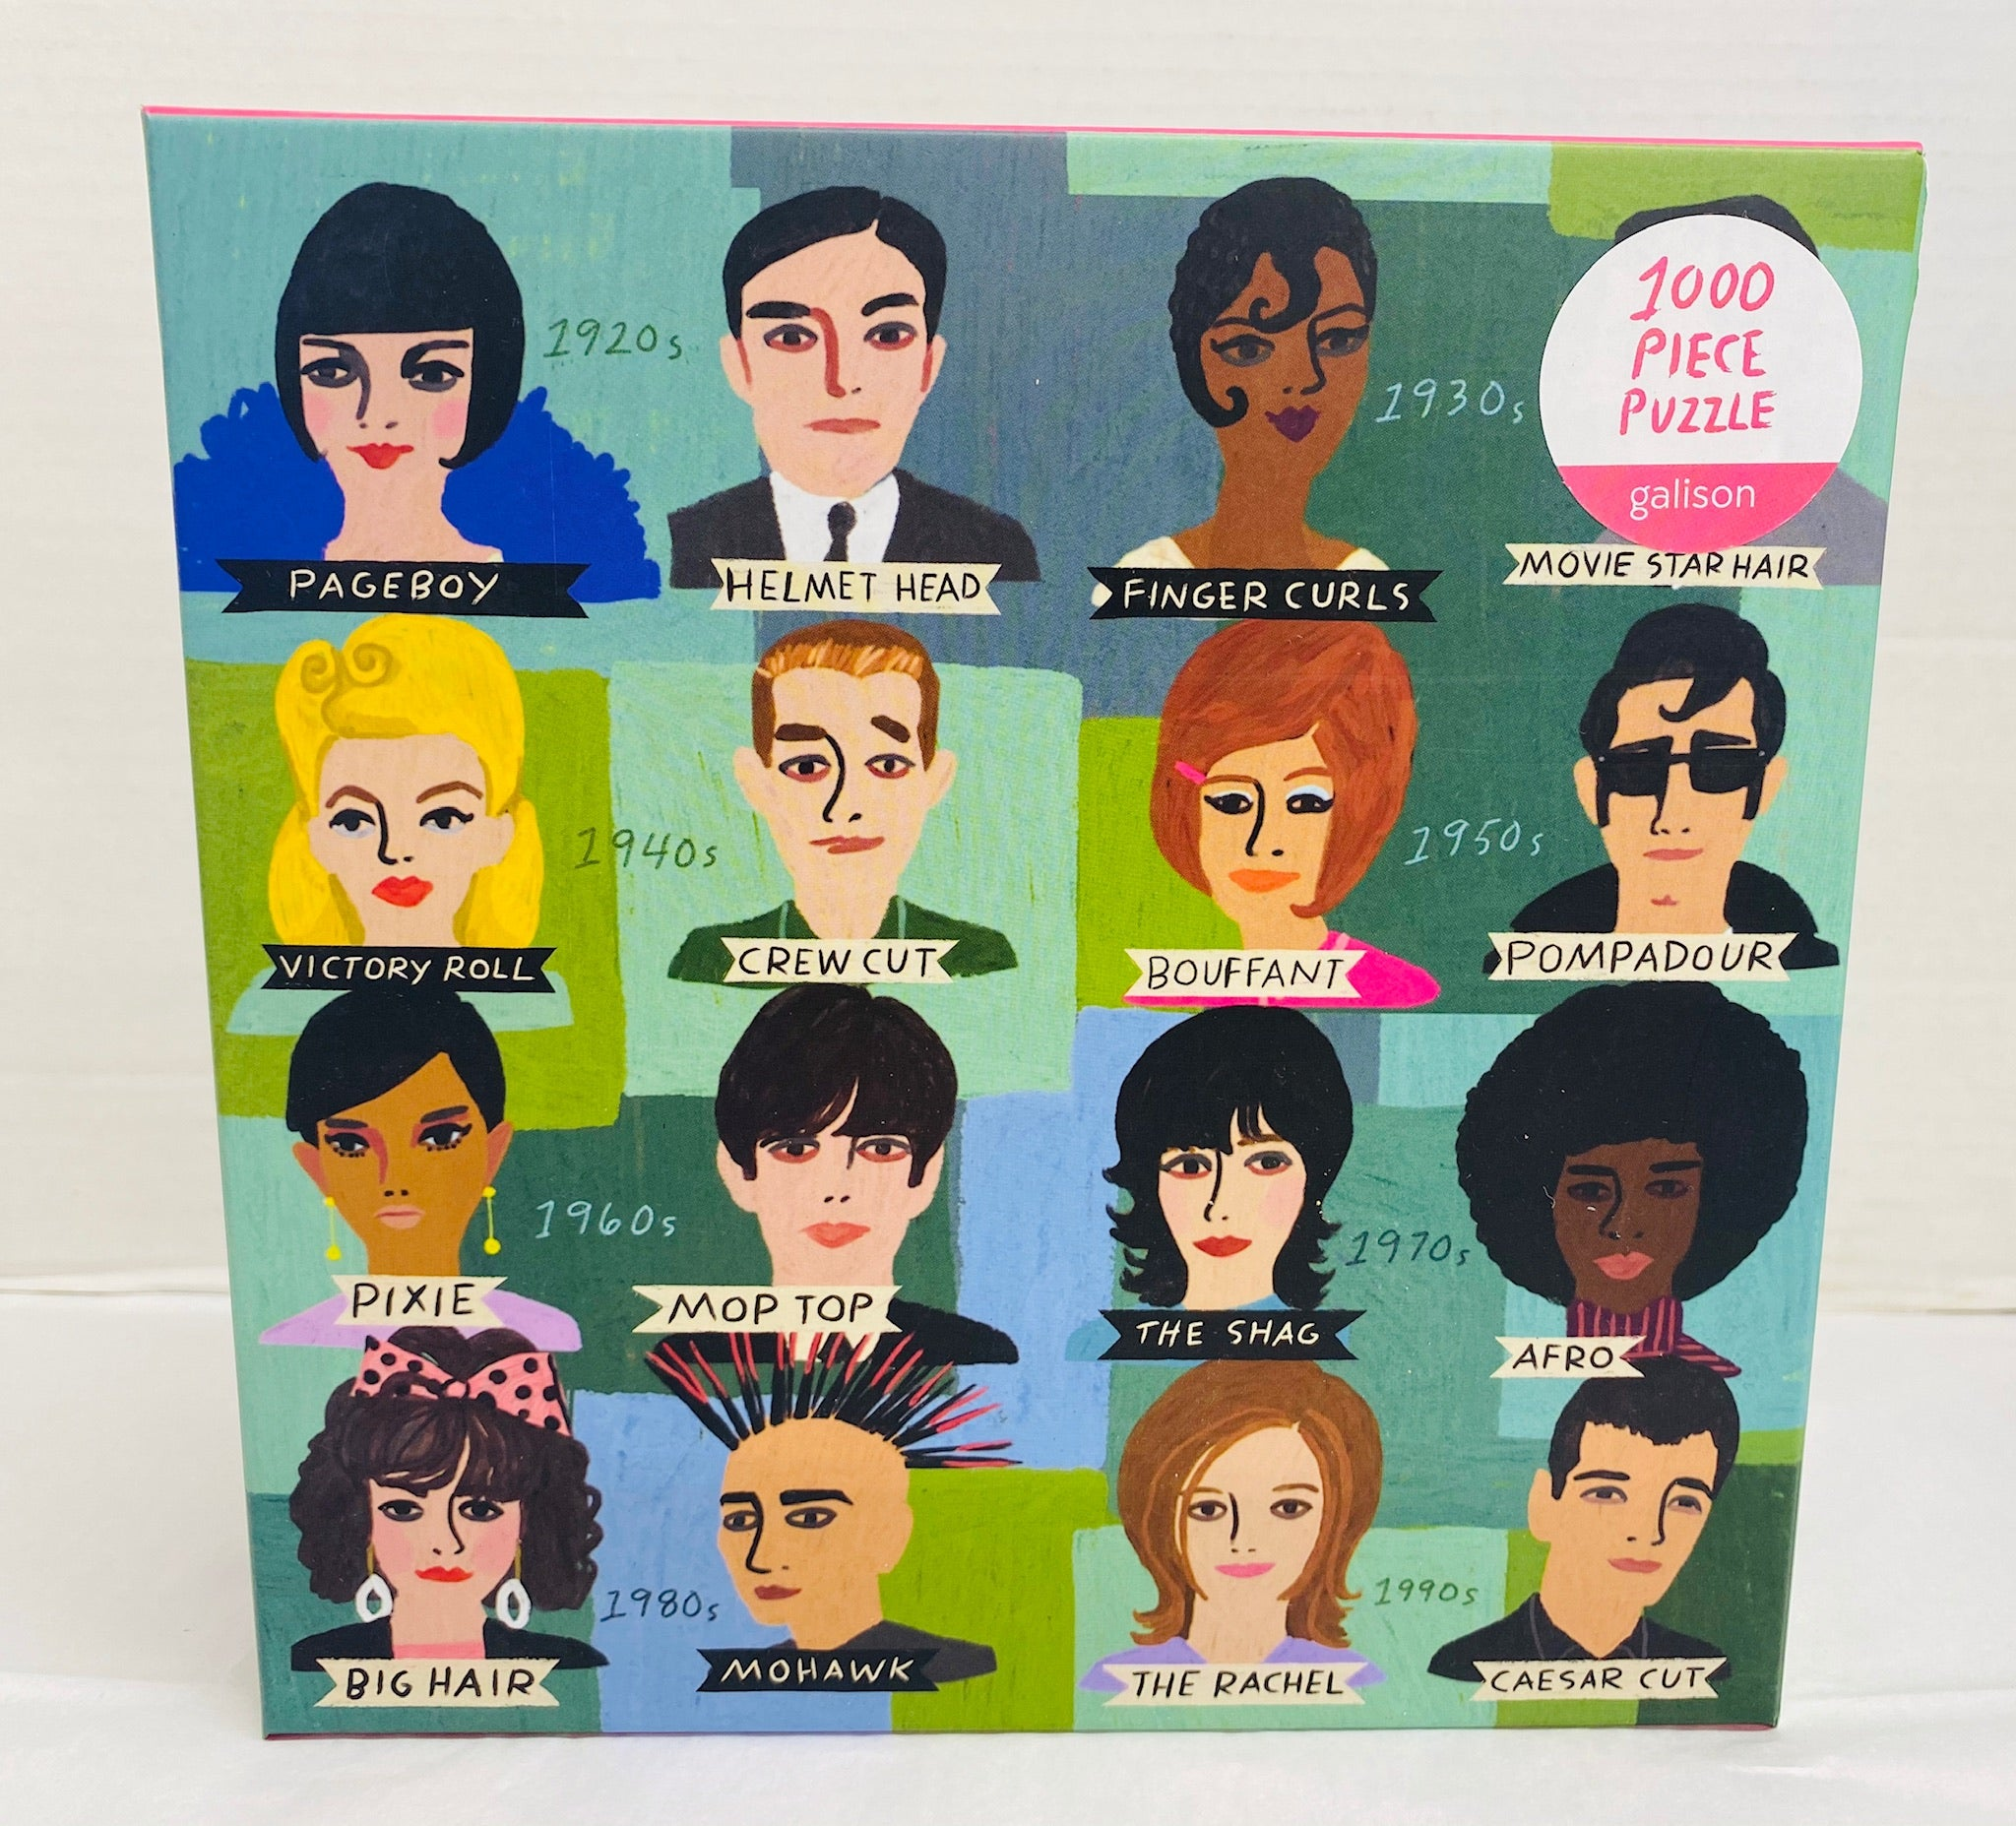 History of Hairdos 1000 piece puzzle